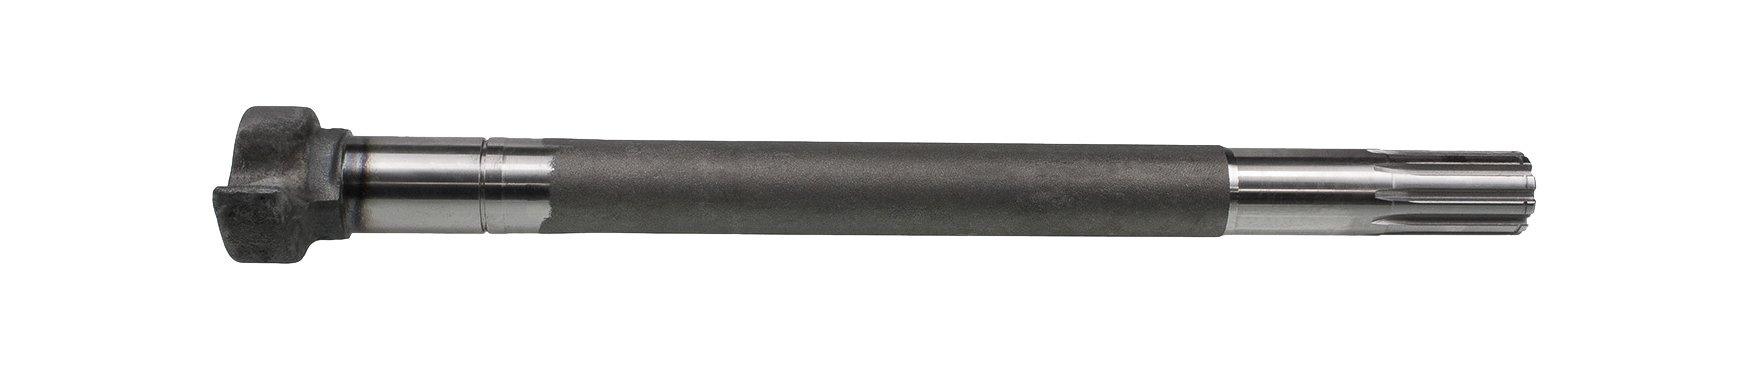 World American WA05-5114 Right Hand Trailer Axle Camshaft by World American